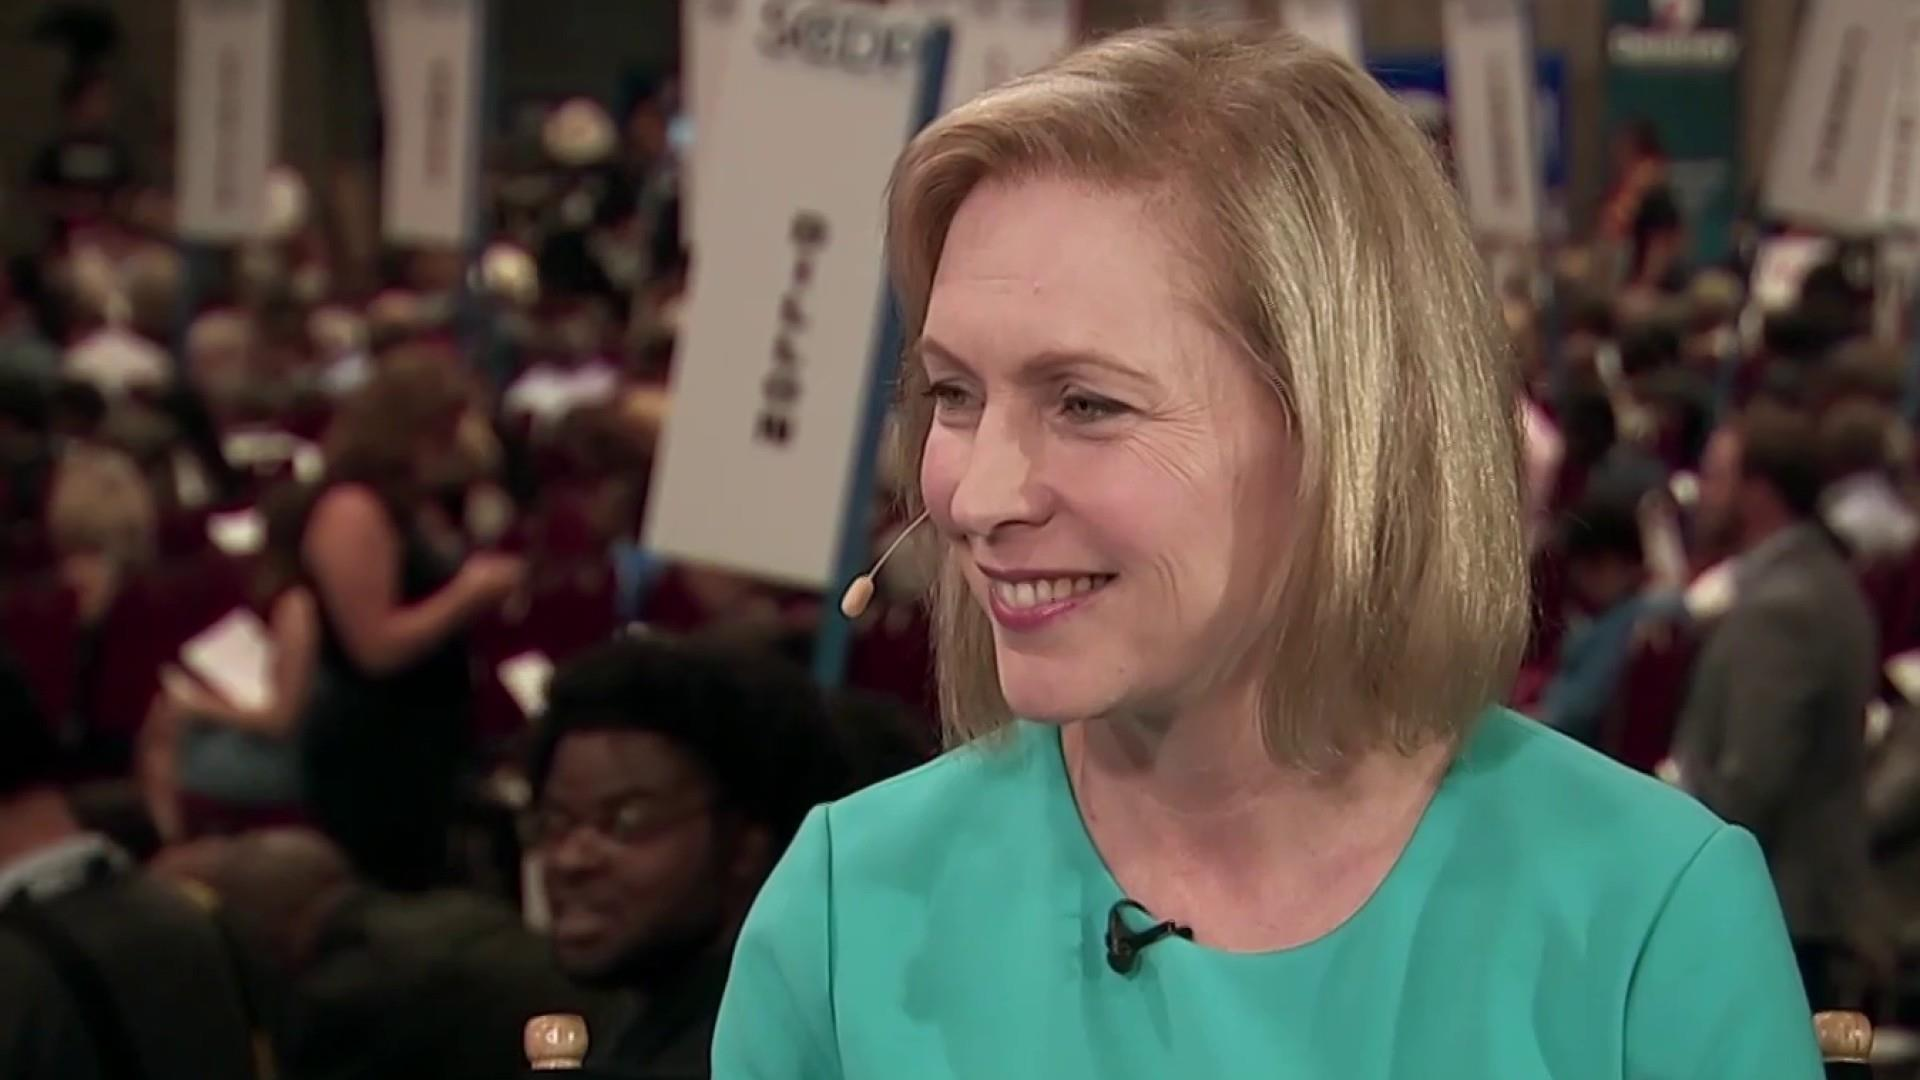 Sen. Gillibrand: Institutional and systemic racism affects us across the board